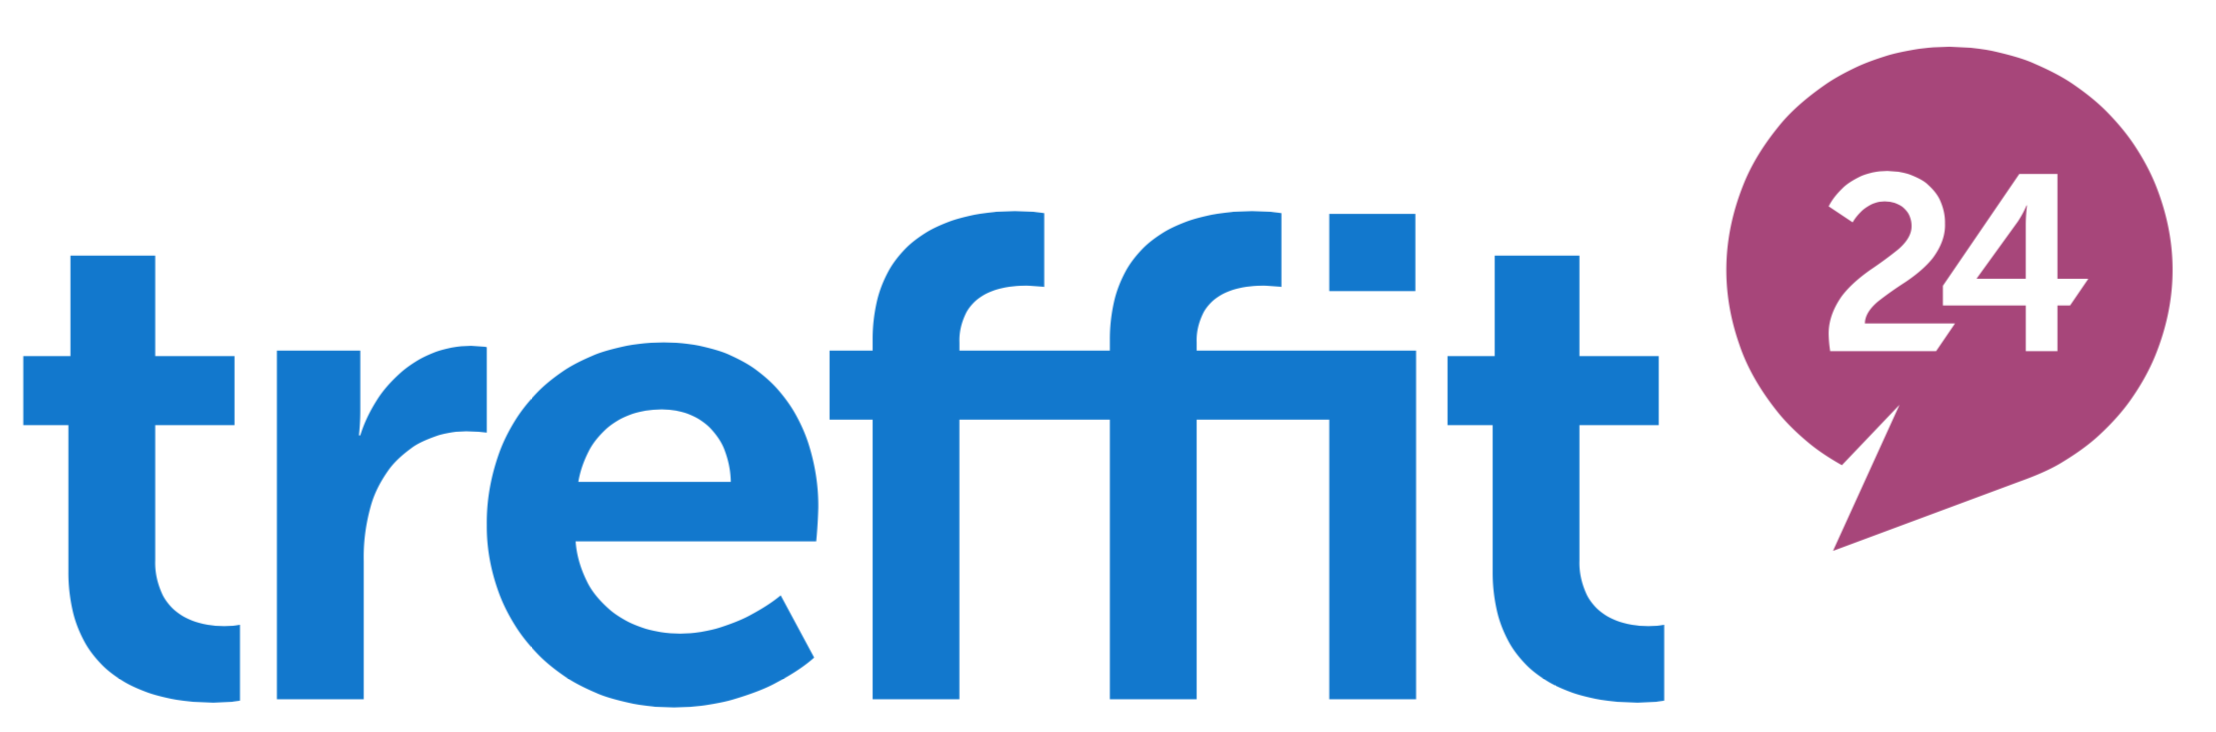 Treffit24 - Best Dating and Match Making Platform in Finland